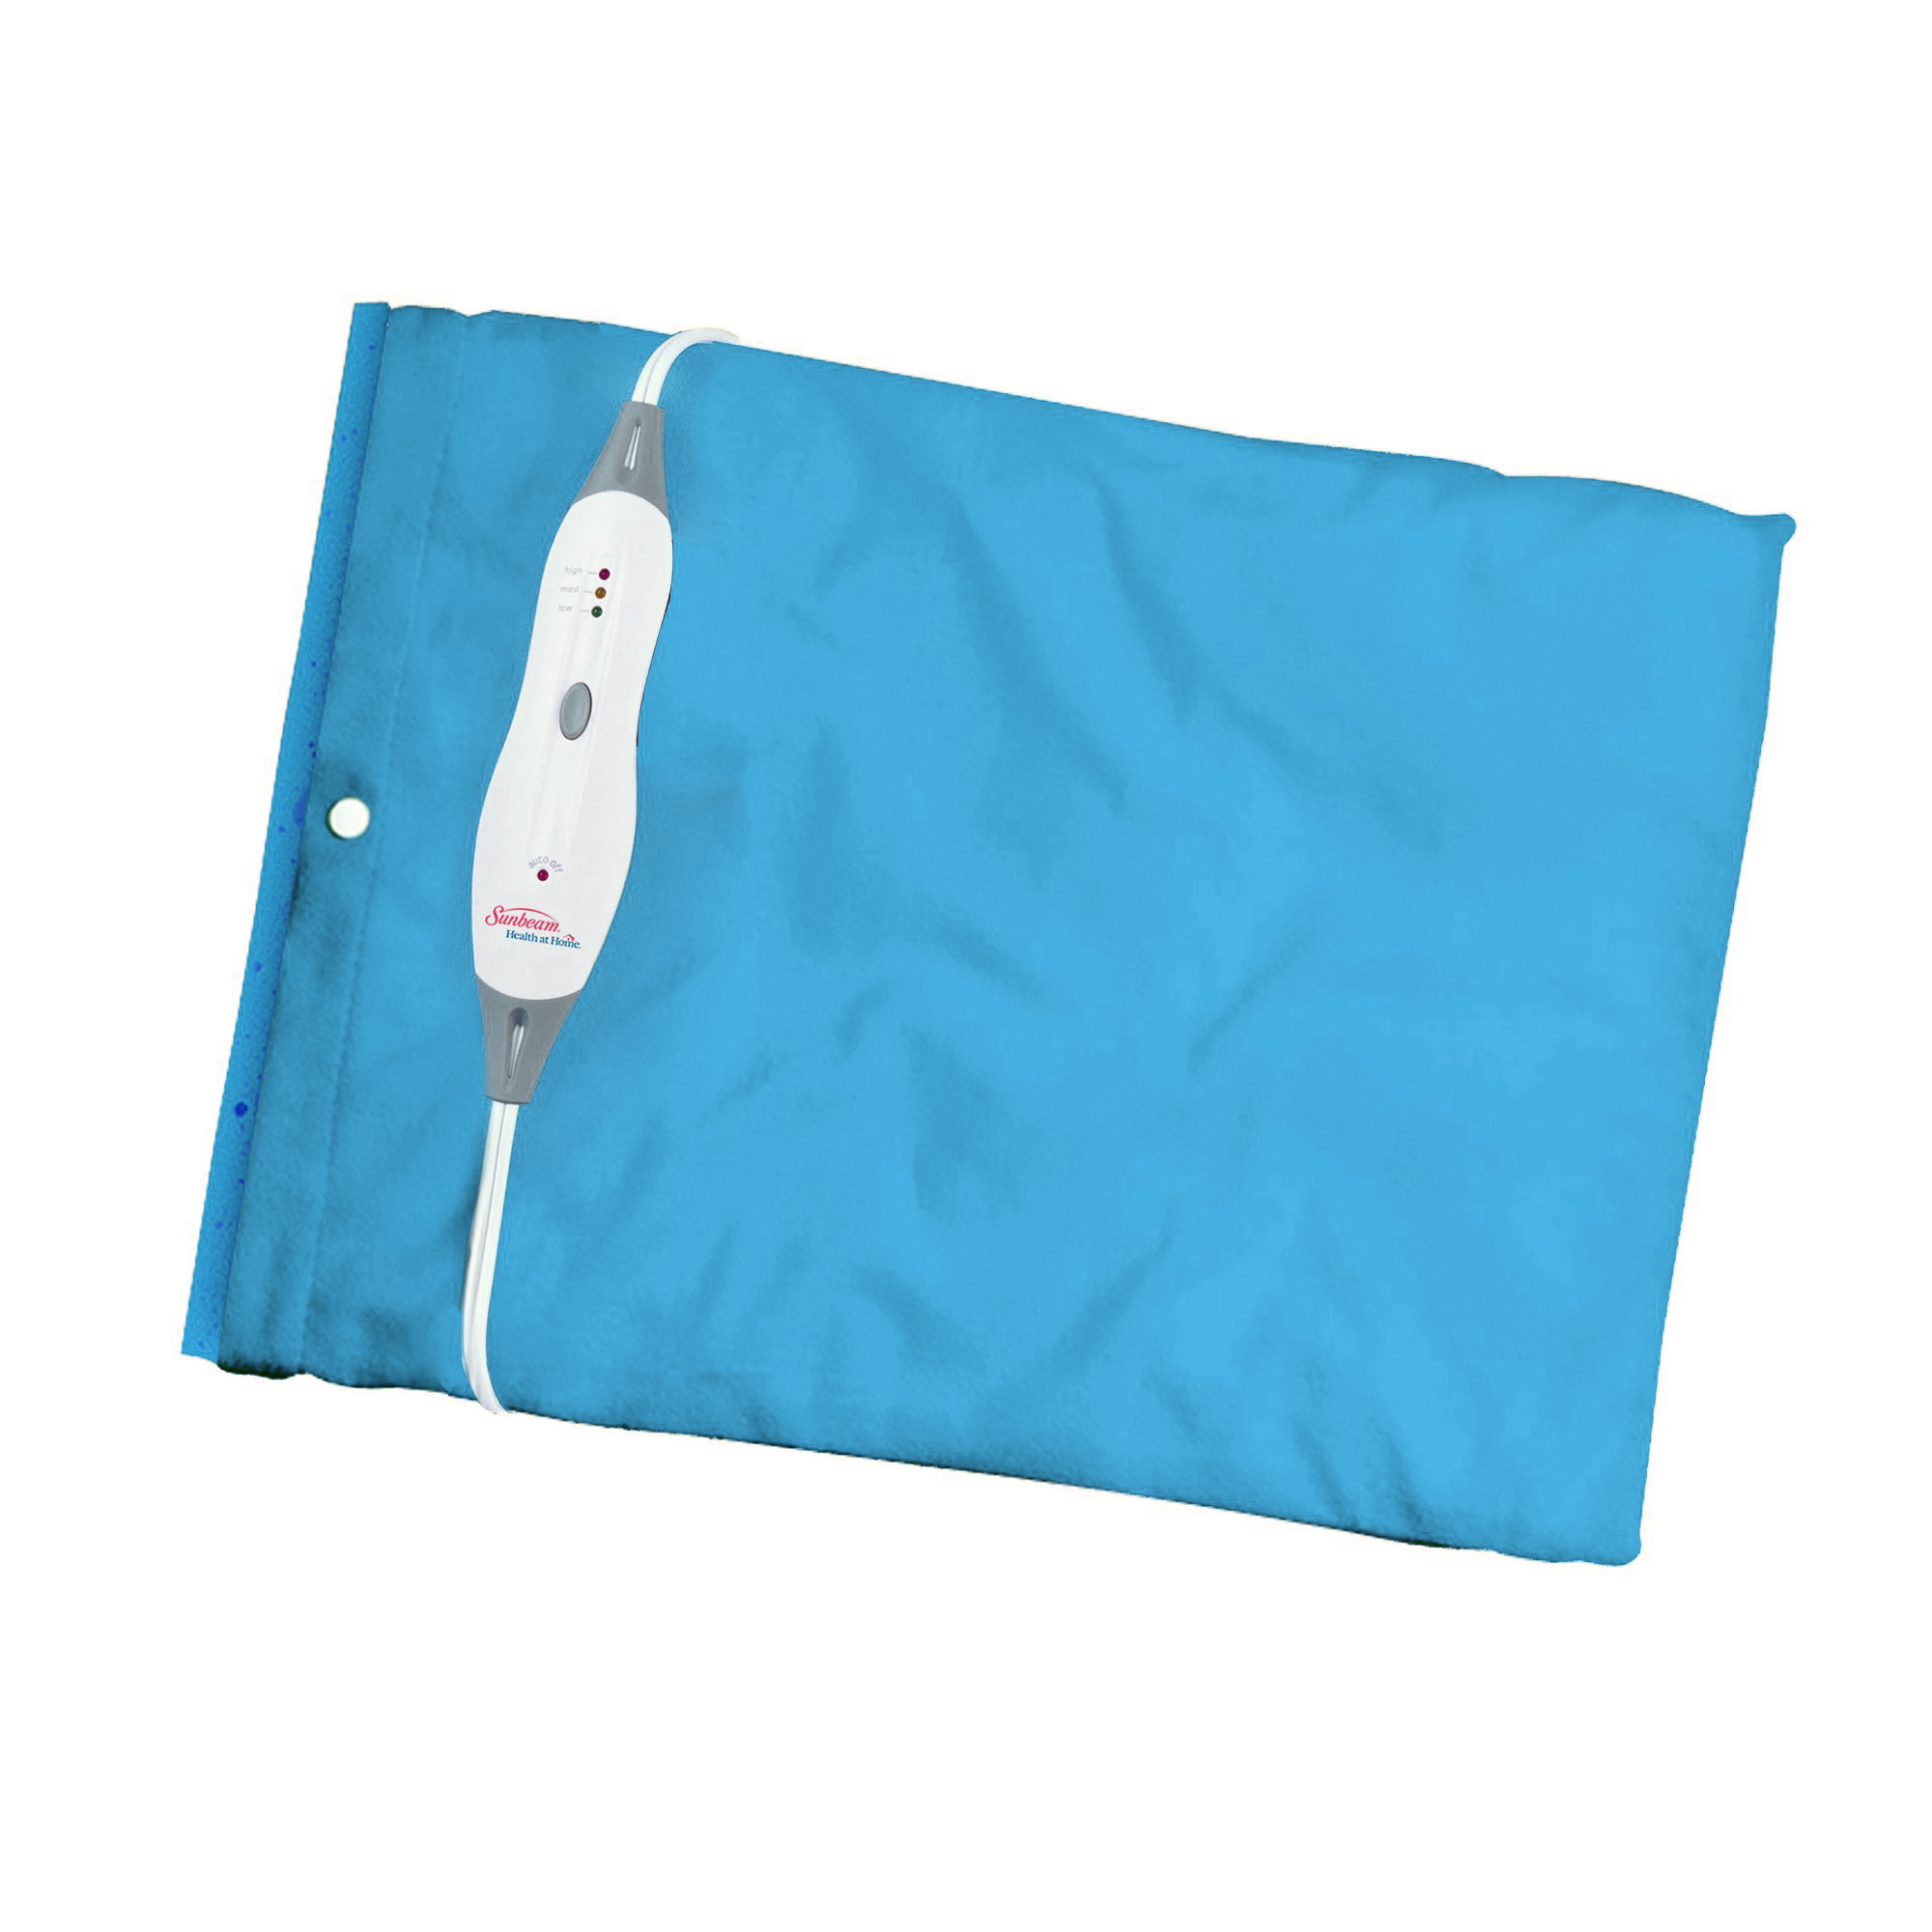 Sunbeam King Size Heating Pad (722810000)